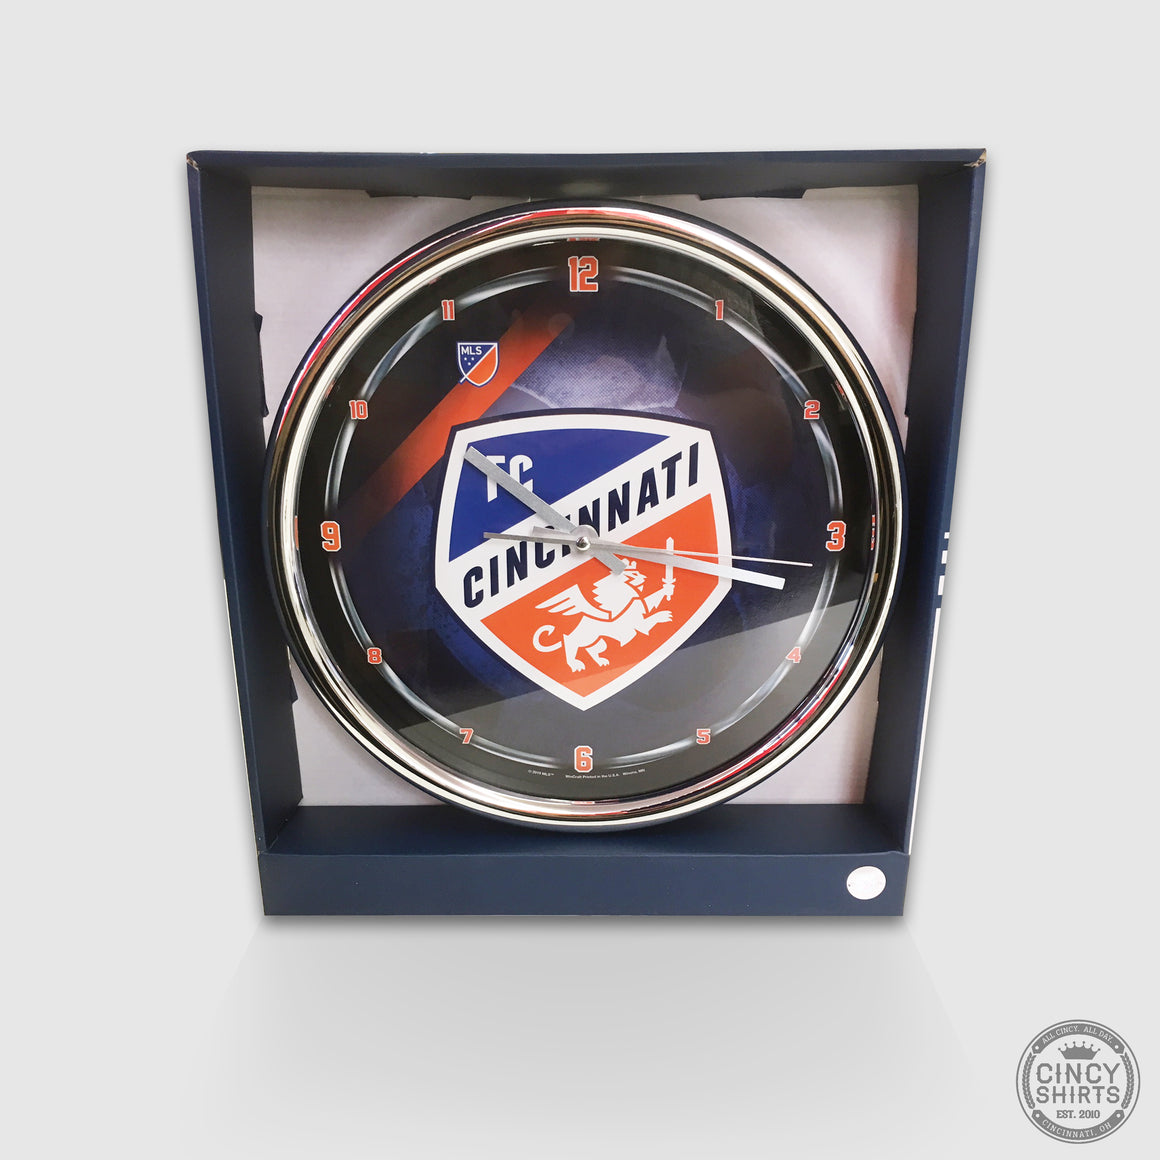 Official FC Cincinnati Clock